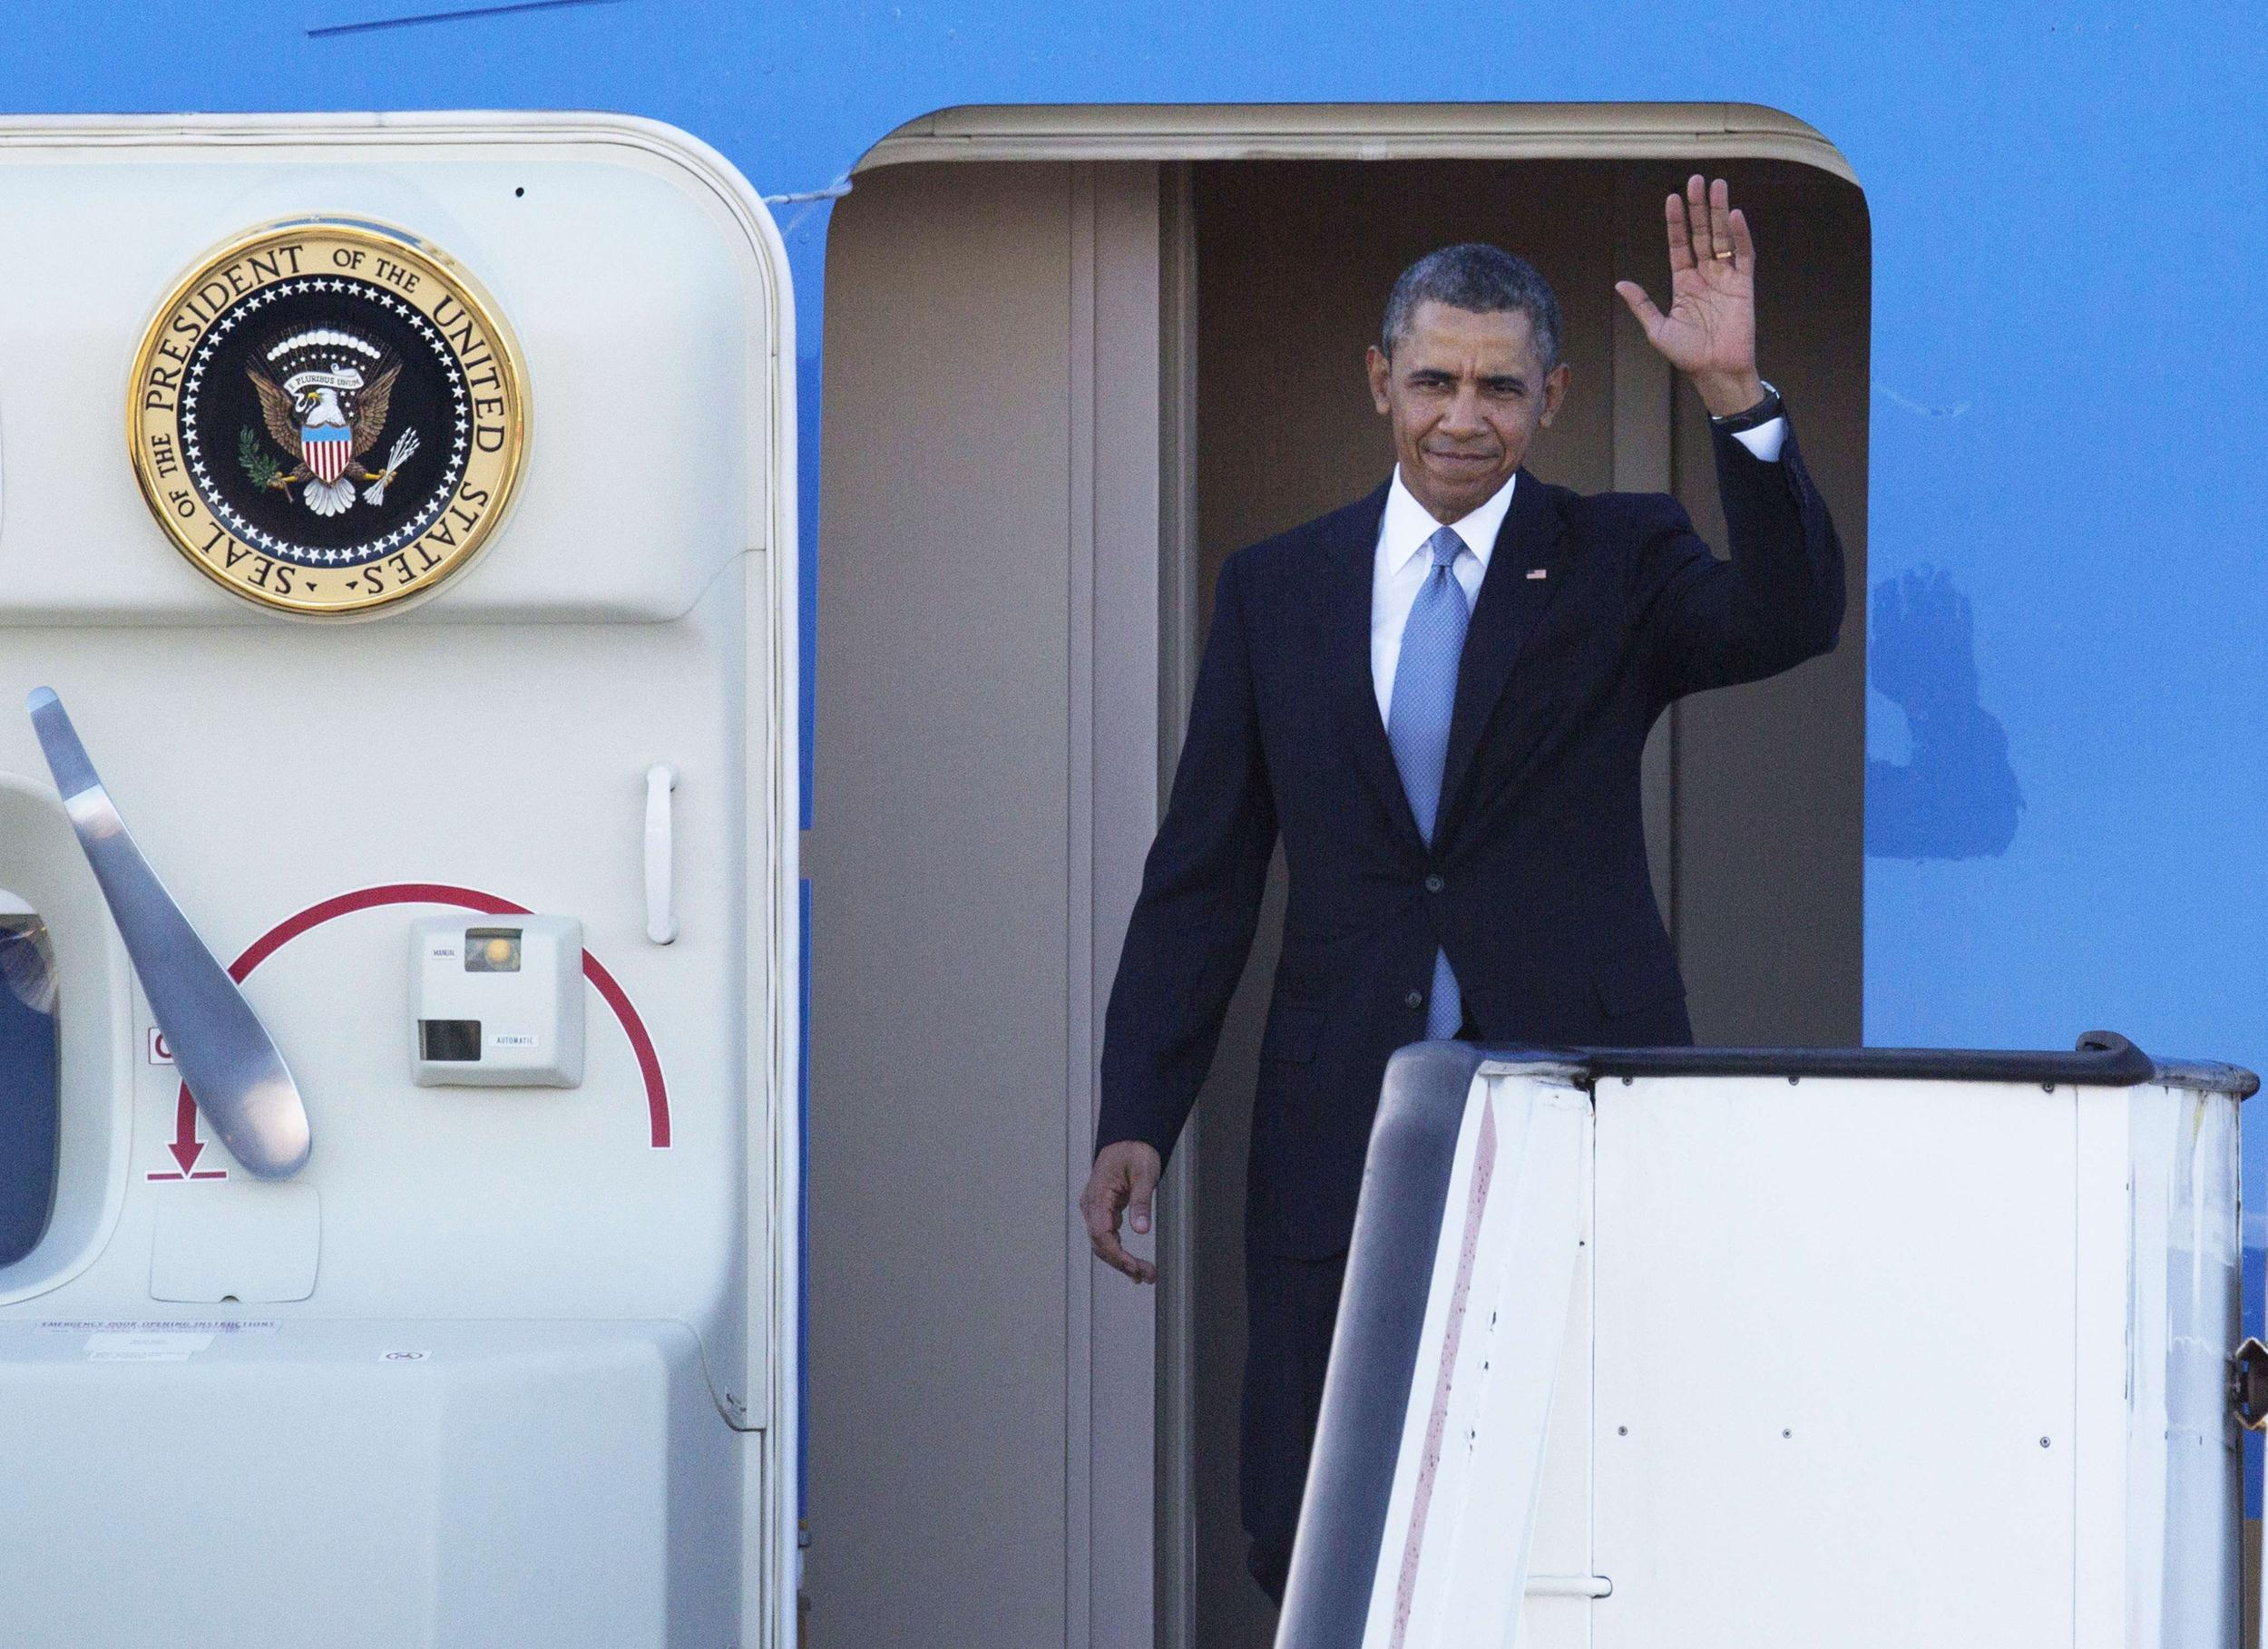 Image: President Barack Obama waves as he disembarks from Air Force One upon his arrival in Amsterdam